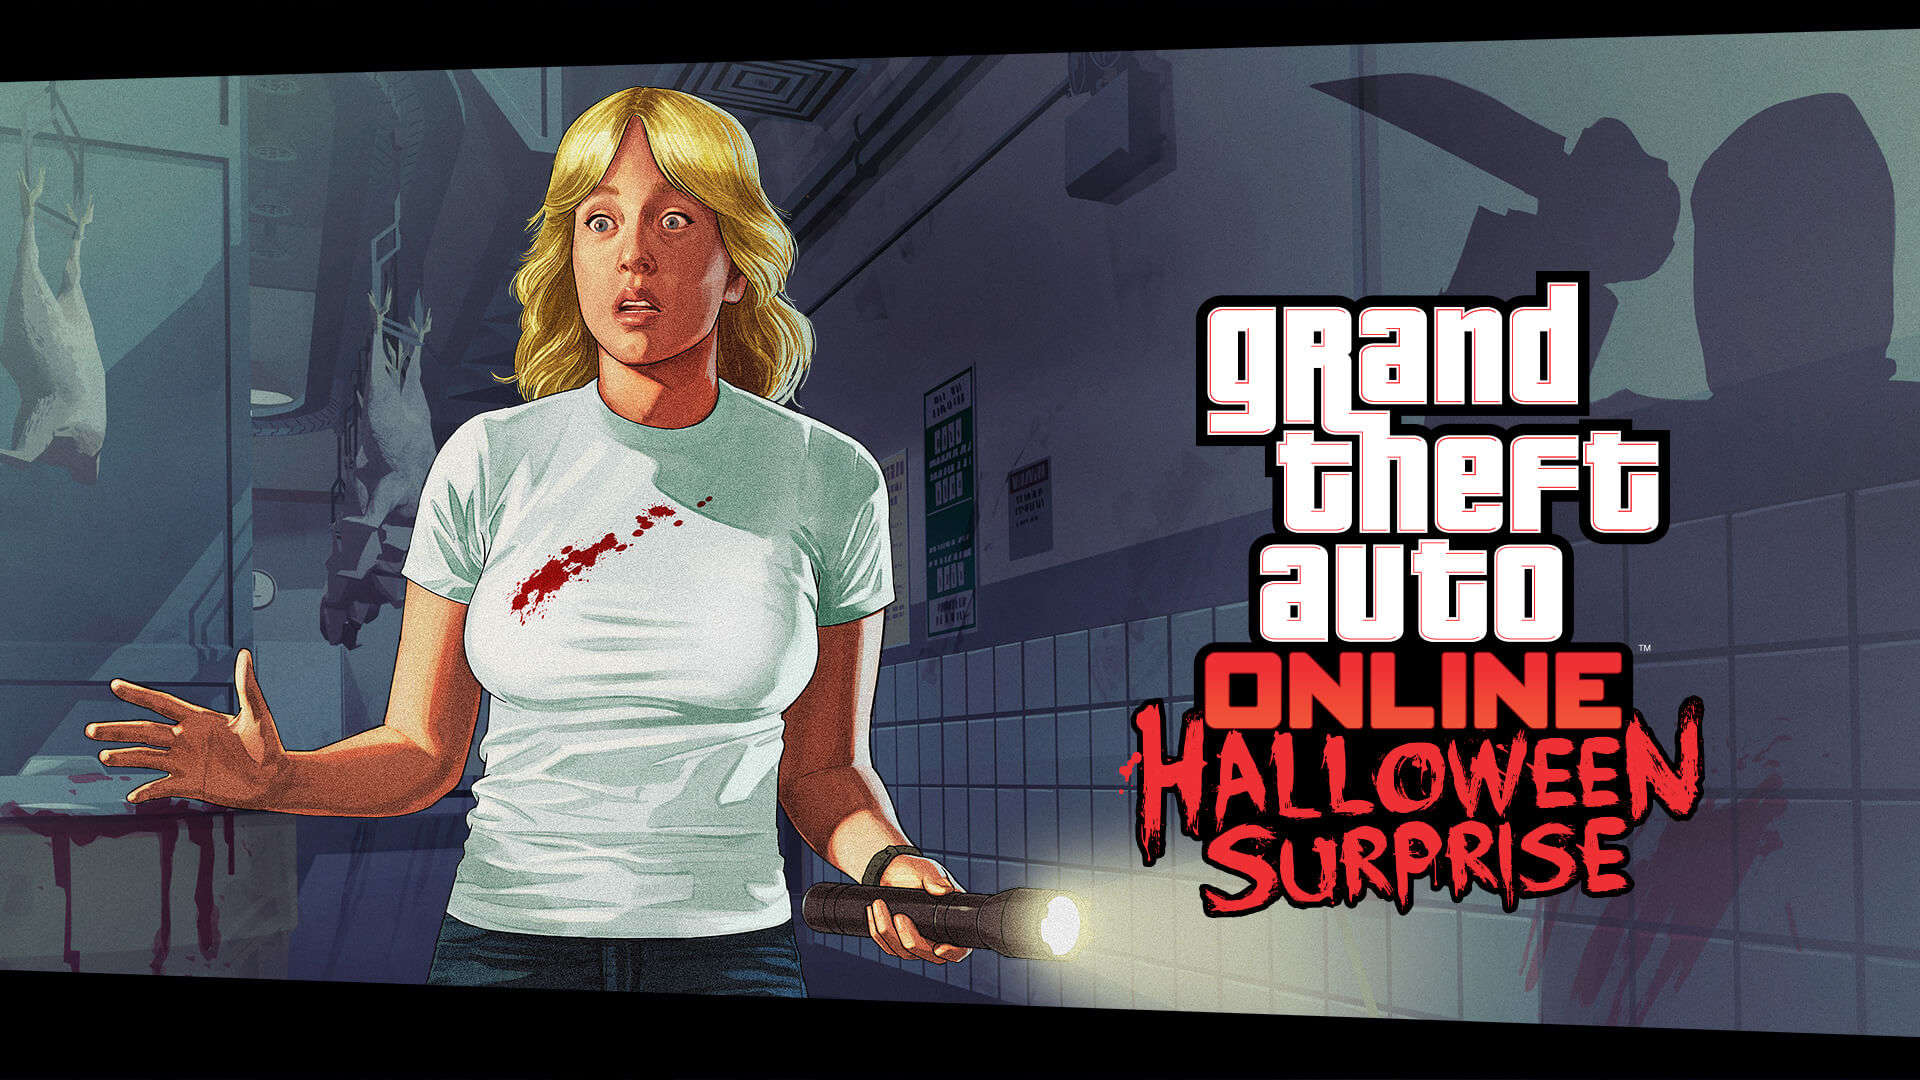 File:Halloween-Surprise-Artwork-GTAO.jpg